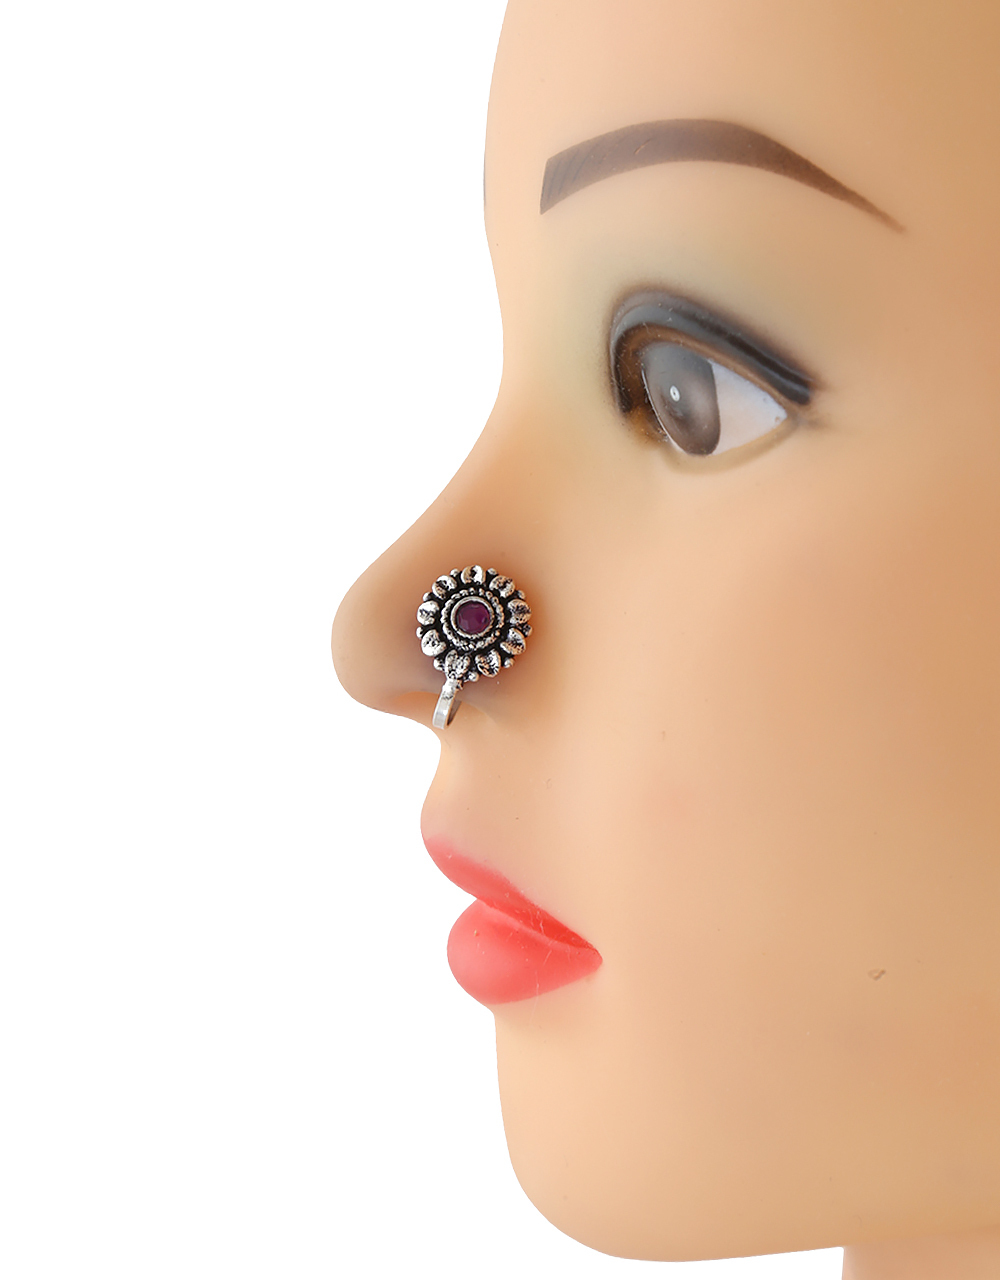 Floral Design Oxidised Finish Jewellery Nose Pin